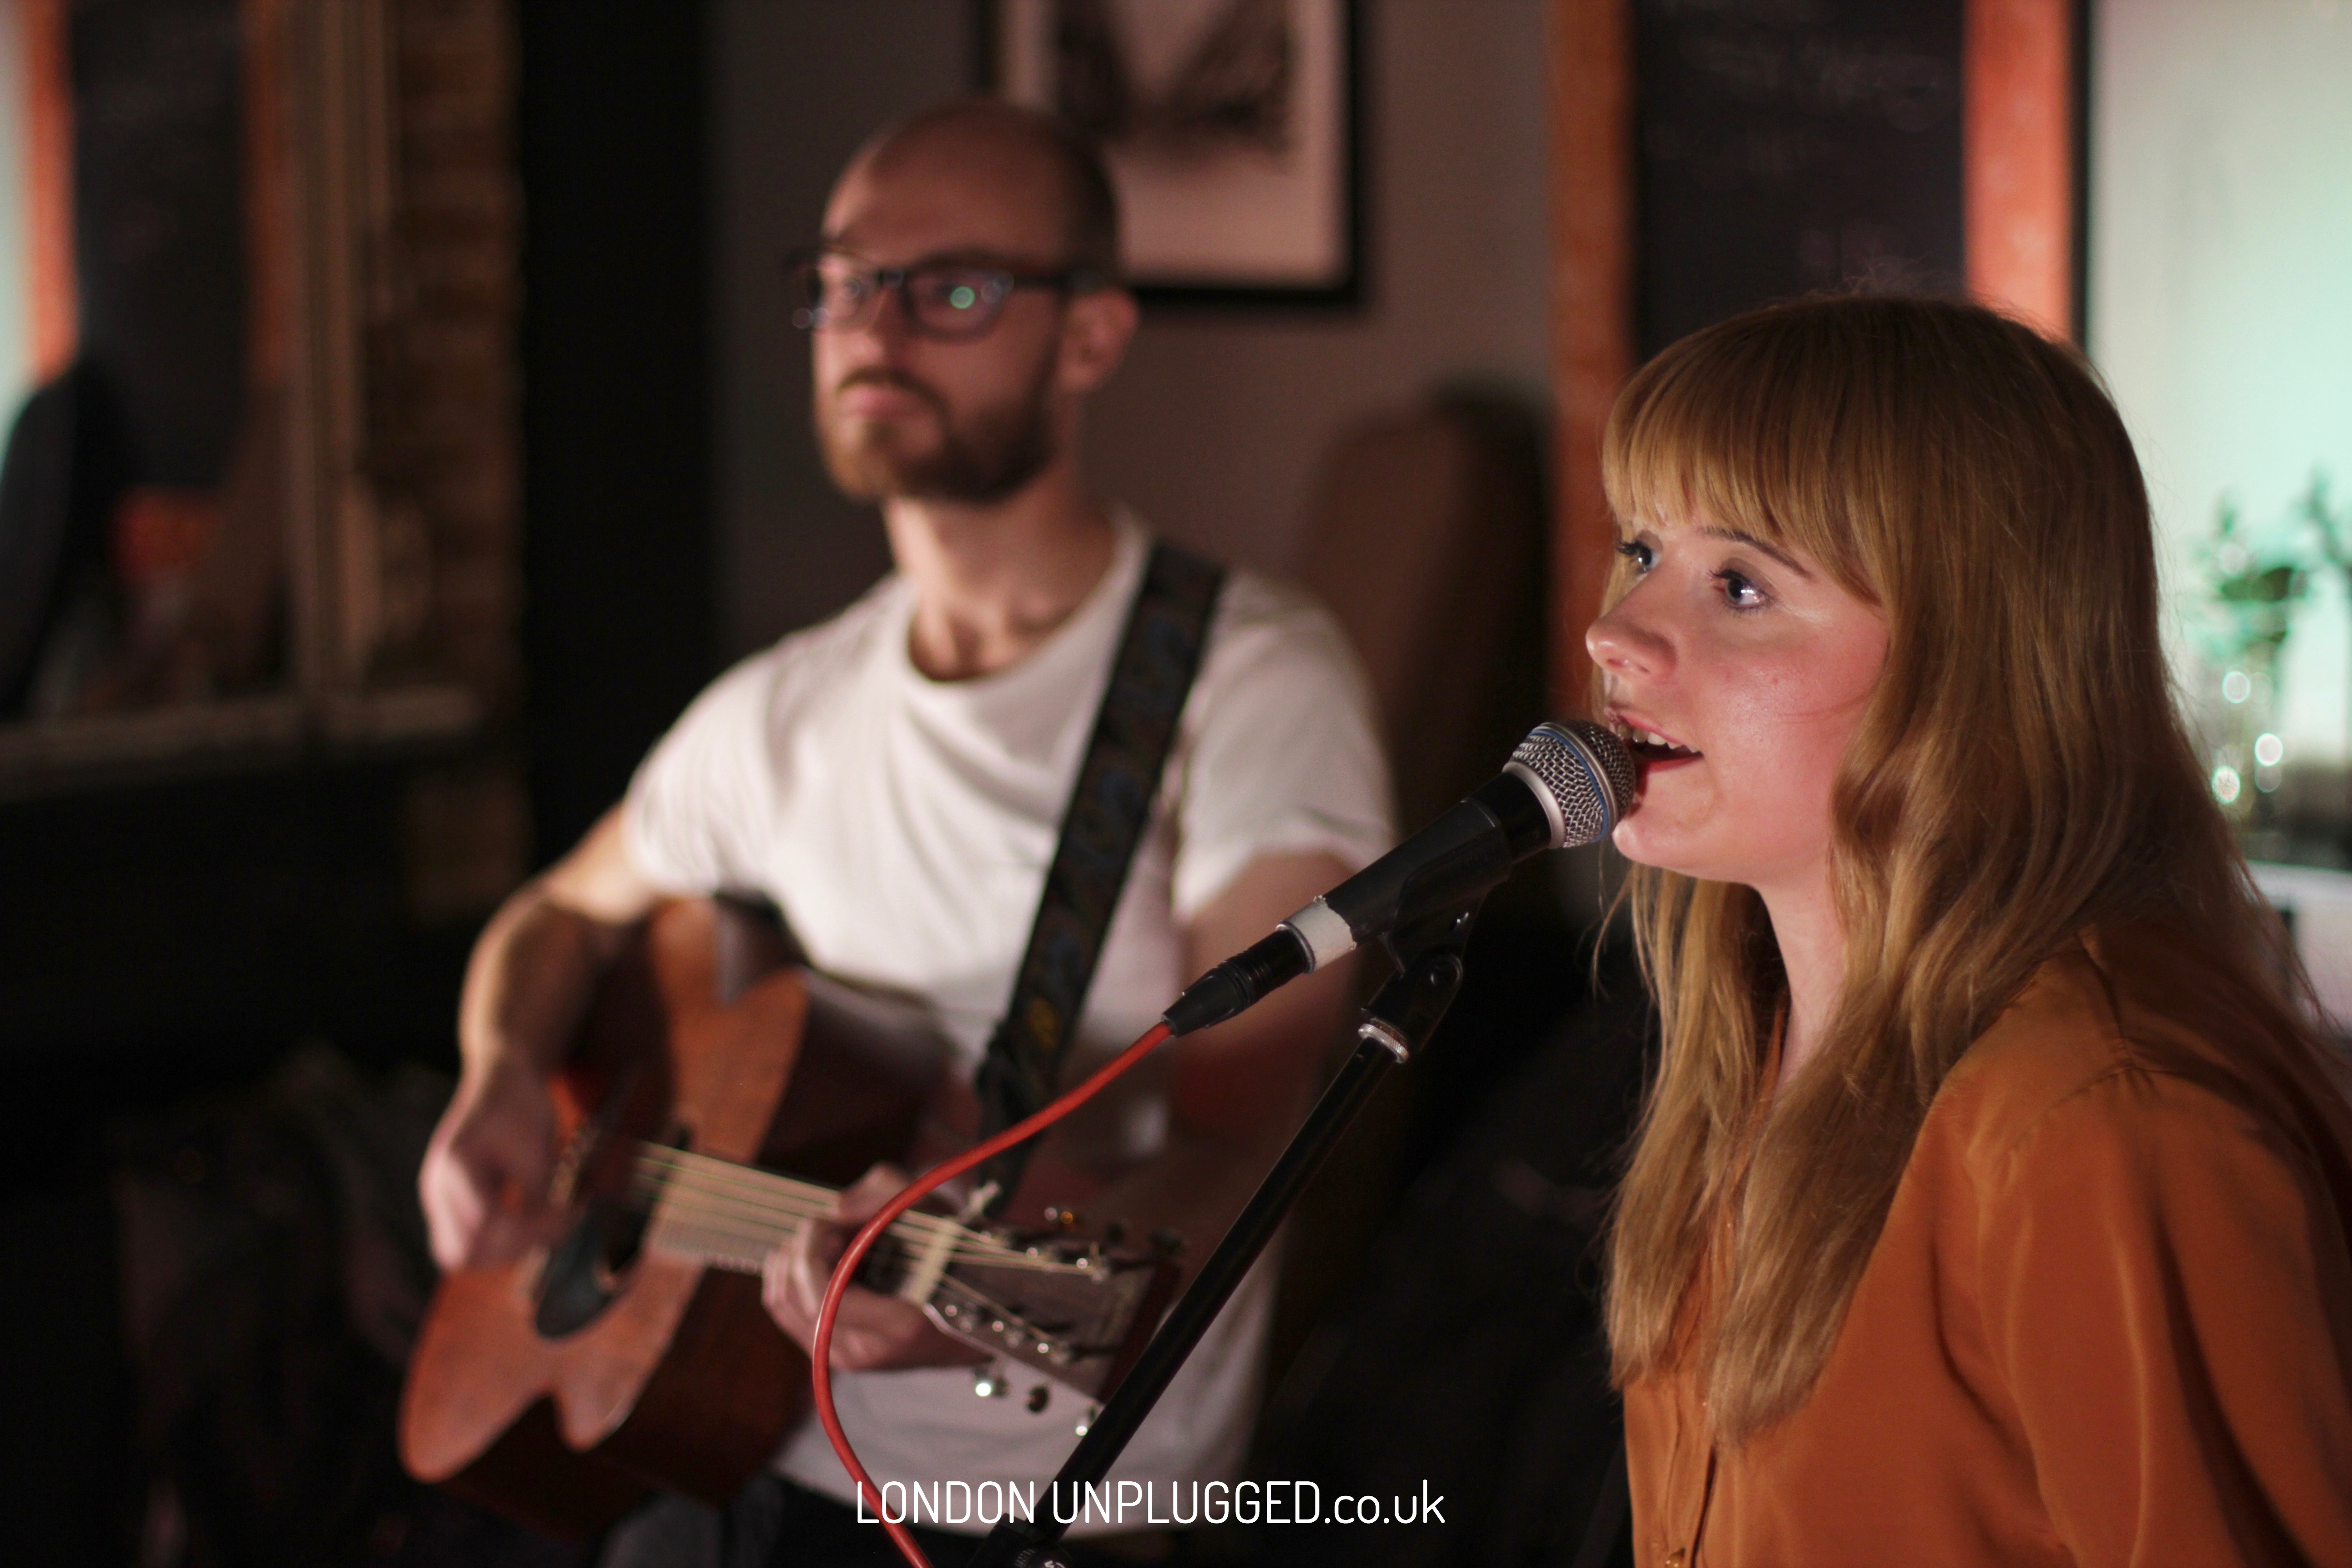 Live at The Crabtree in Fulham